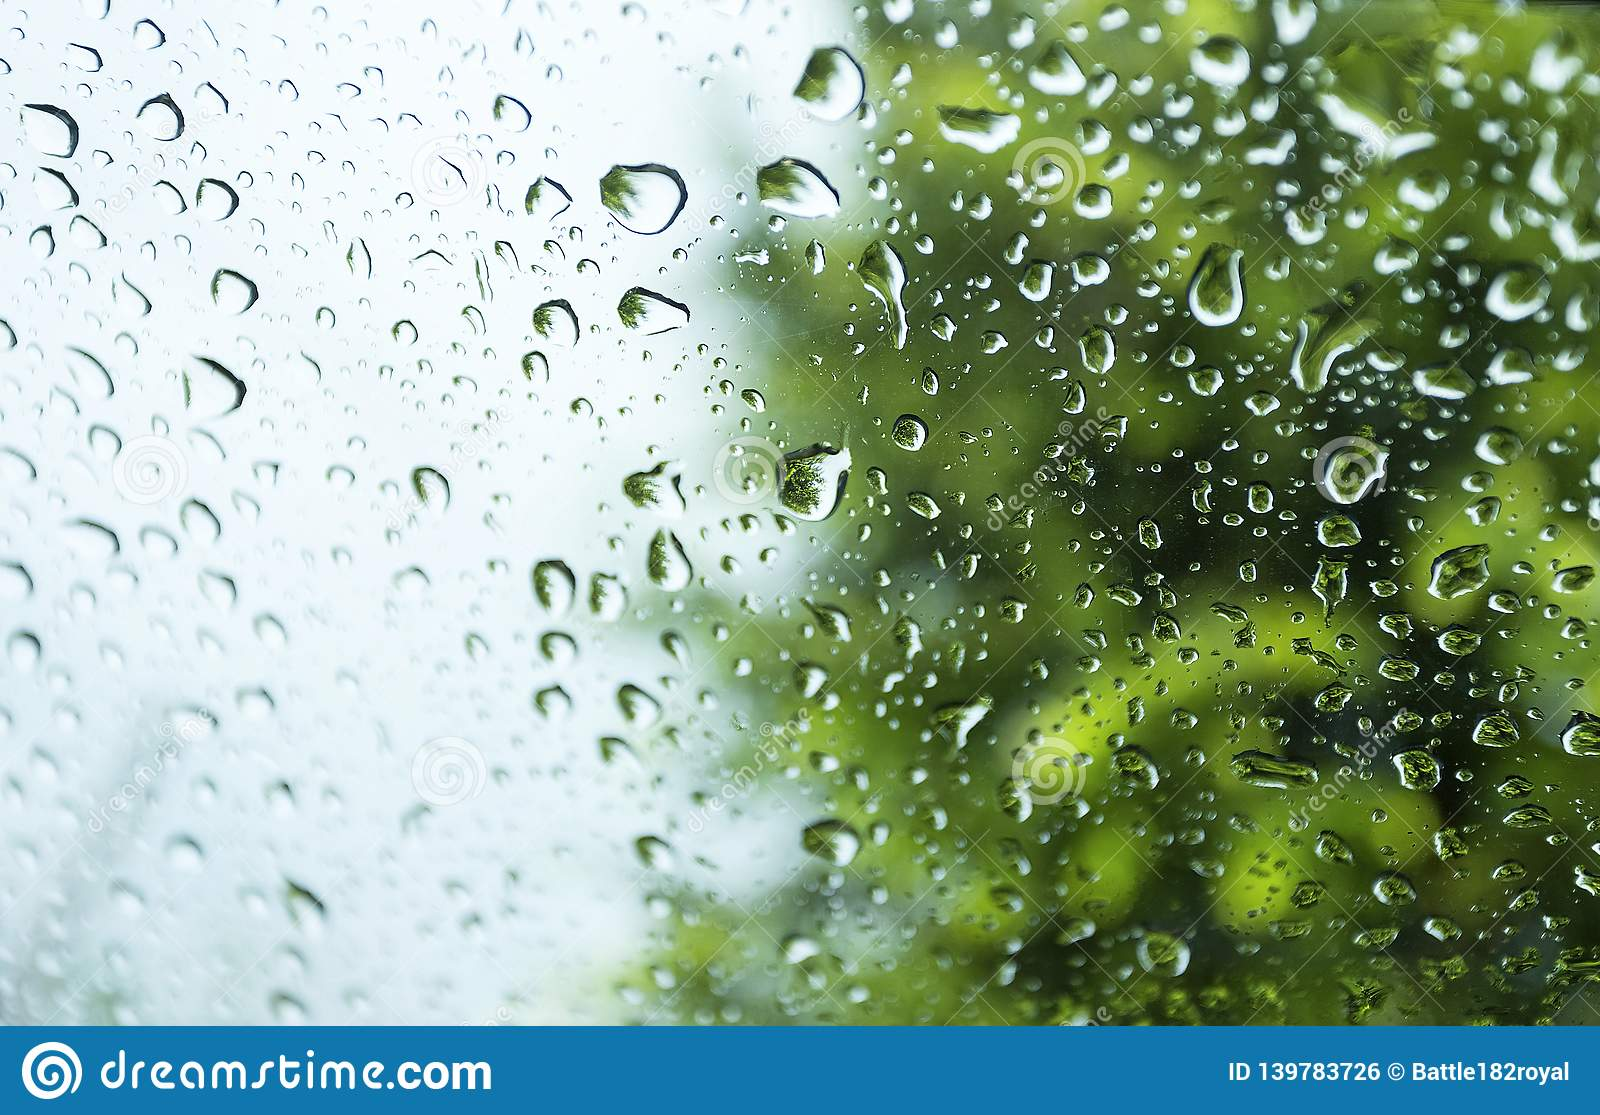 Water Drops On Glass In Beautiful Natural Rain Use For Background And Wallpapers Stock Photo Image Of Pure Moisture 139783726